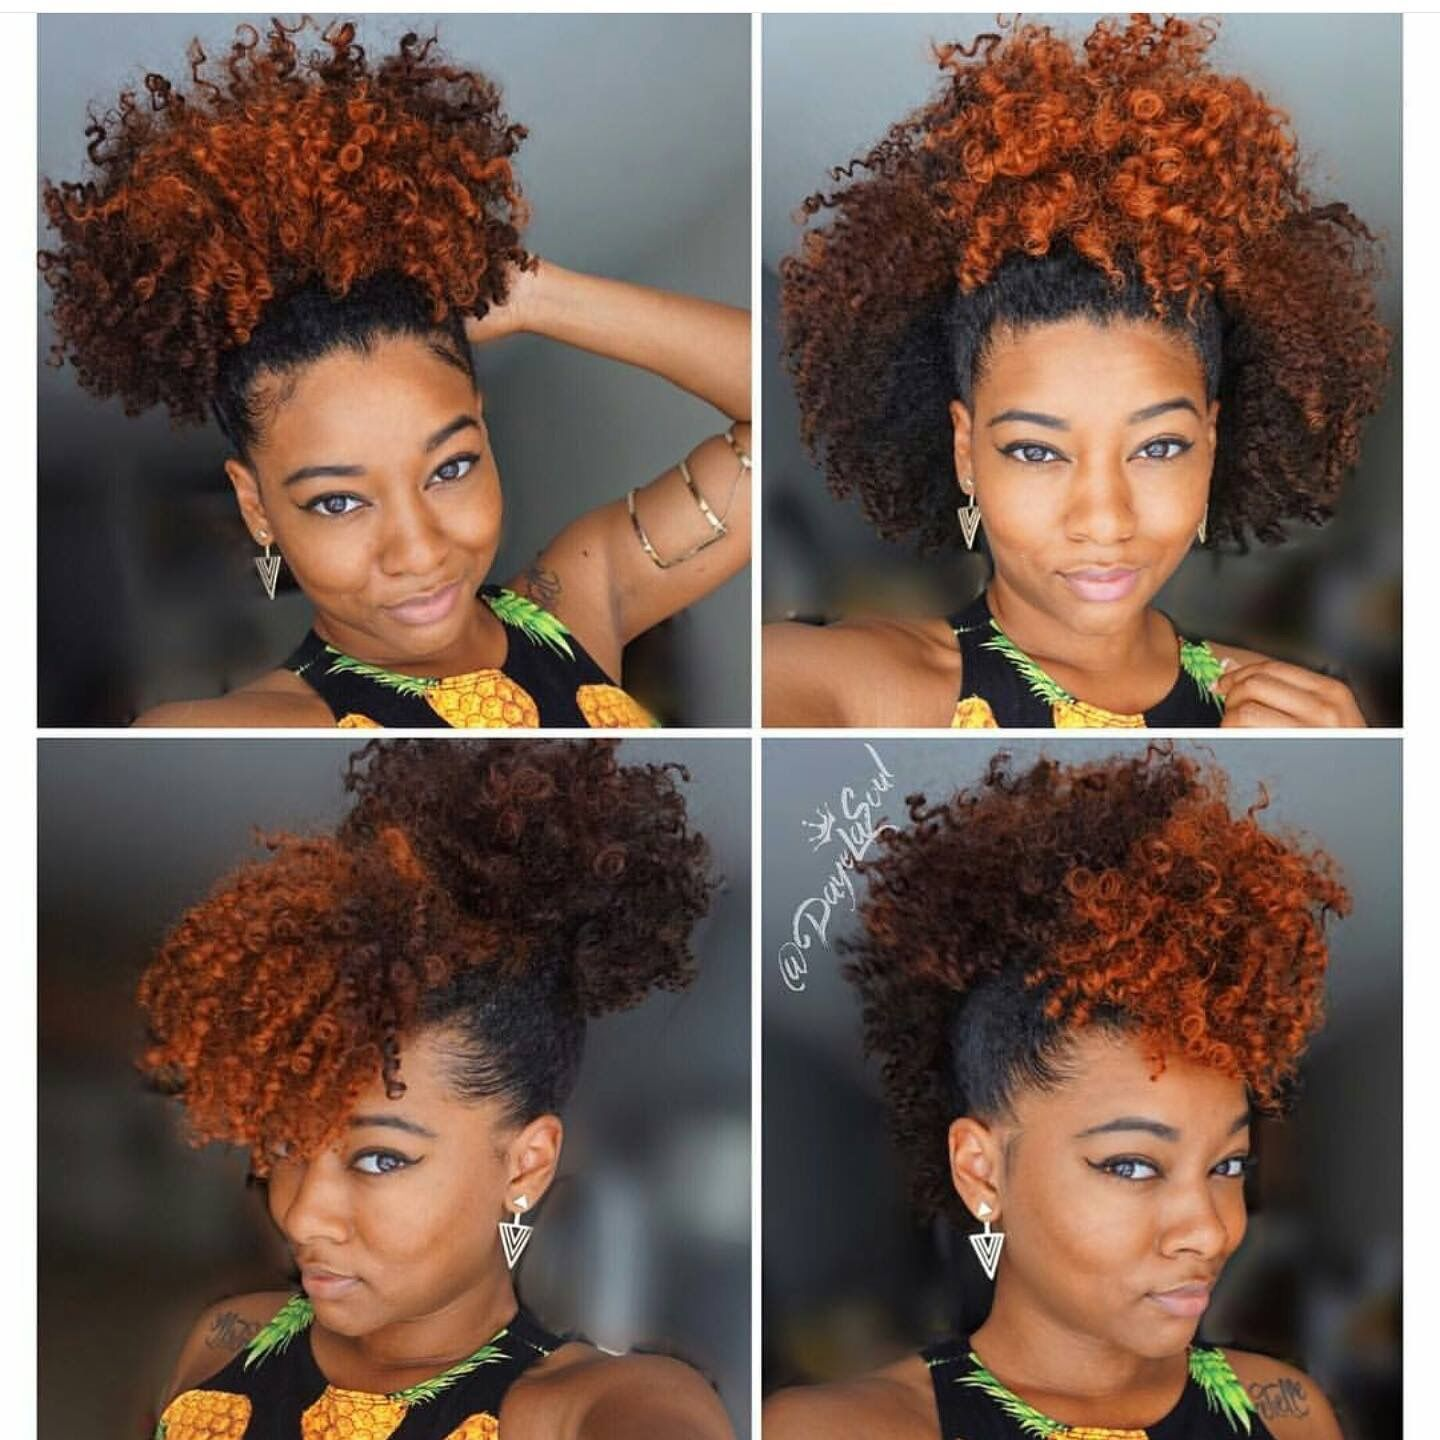 Things To Do With A Wash N Go Curly Hair Styles Natural Hair Braids Natural Hair Styles